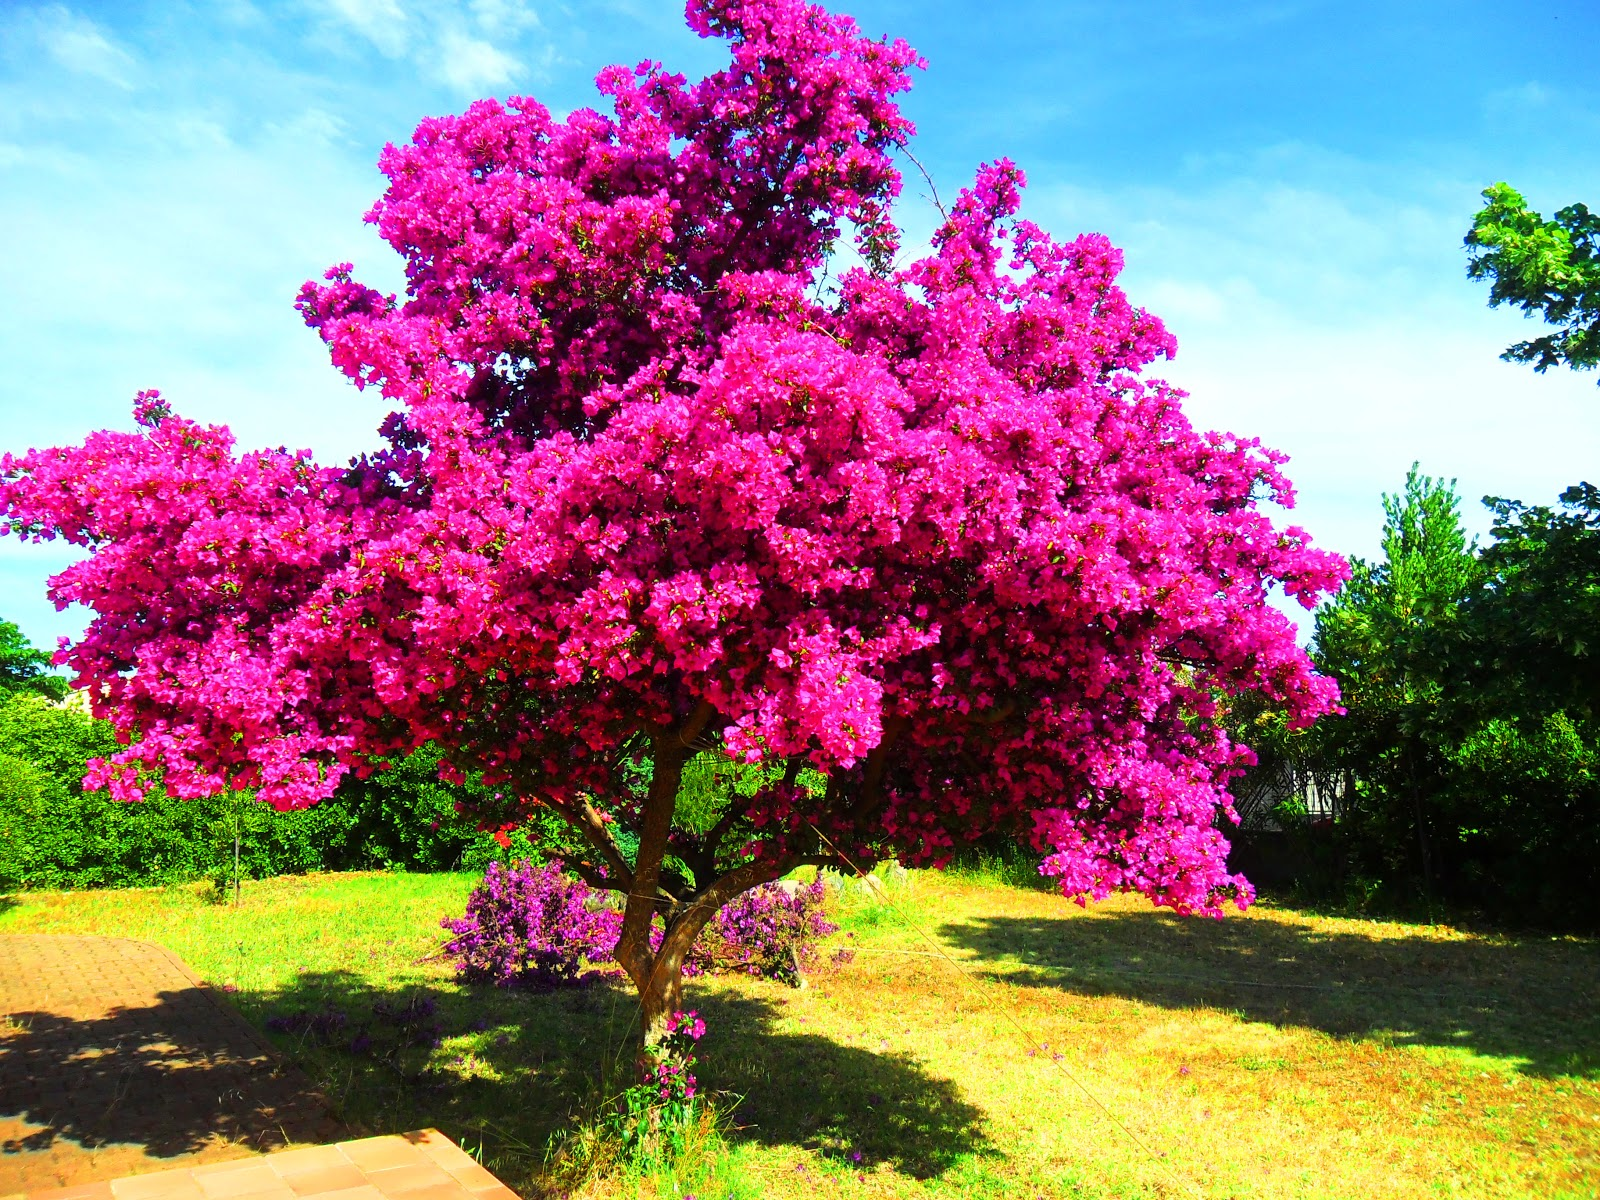 Photographies de sophie v arbre bougainvillier for Arbuste ornemental